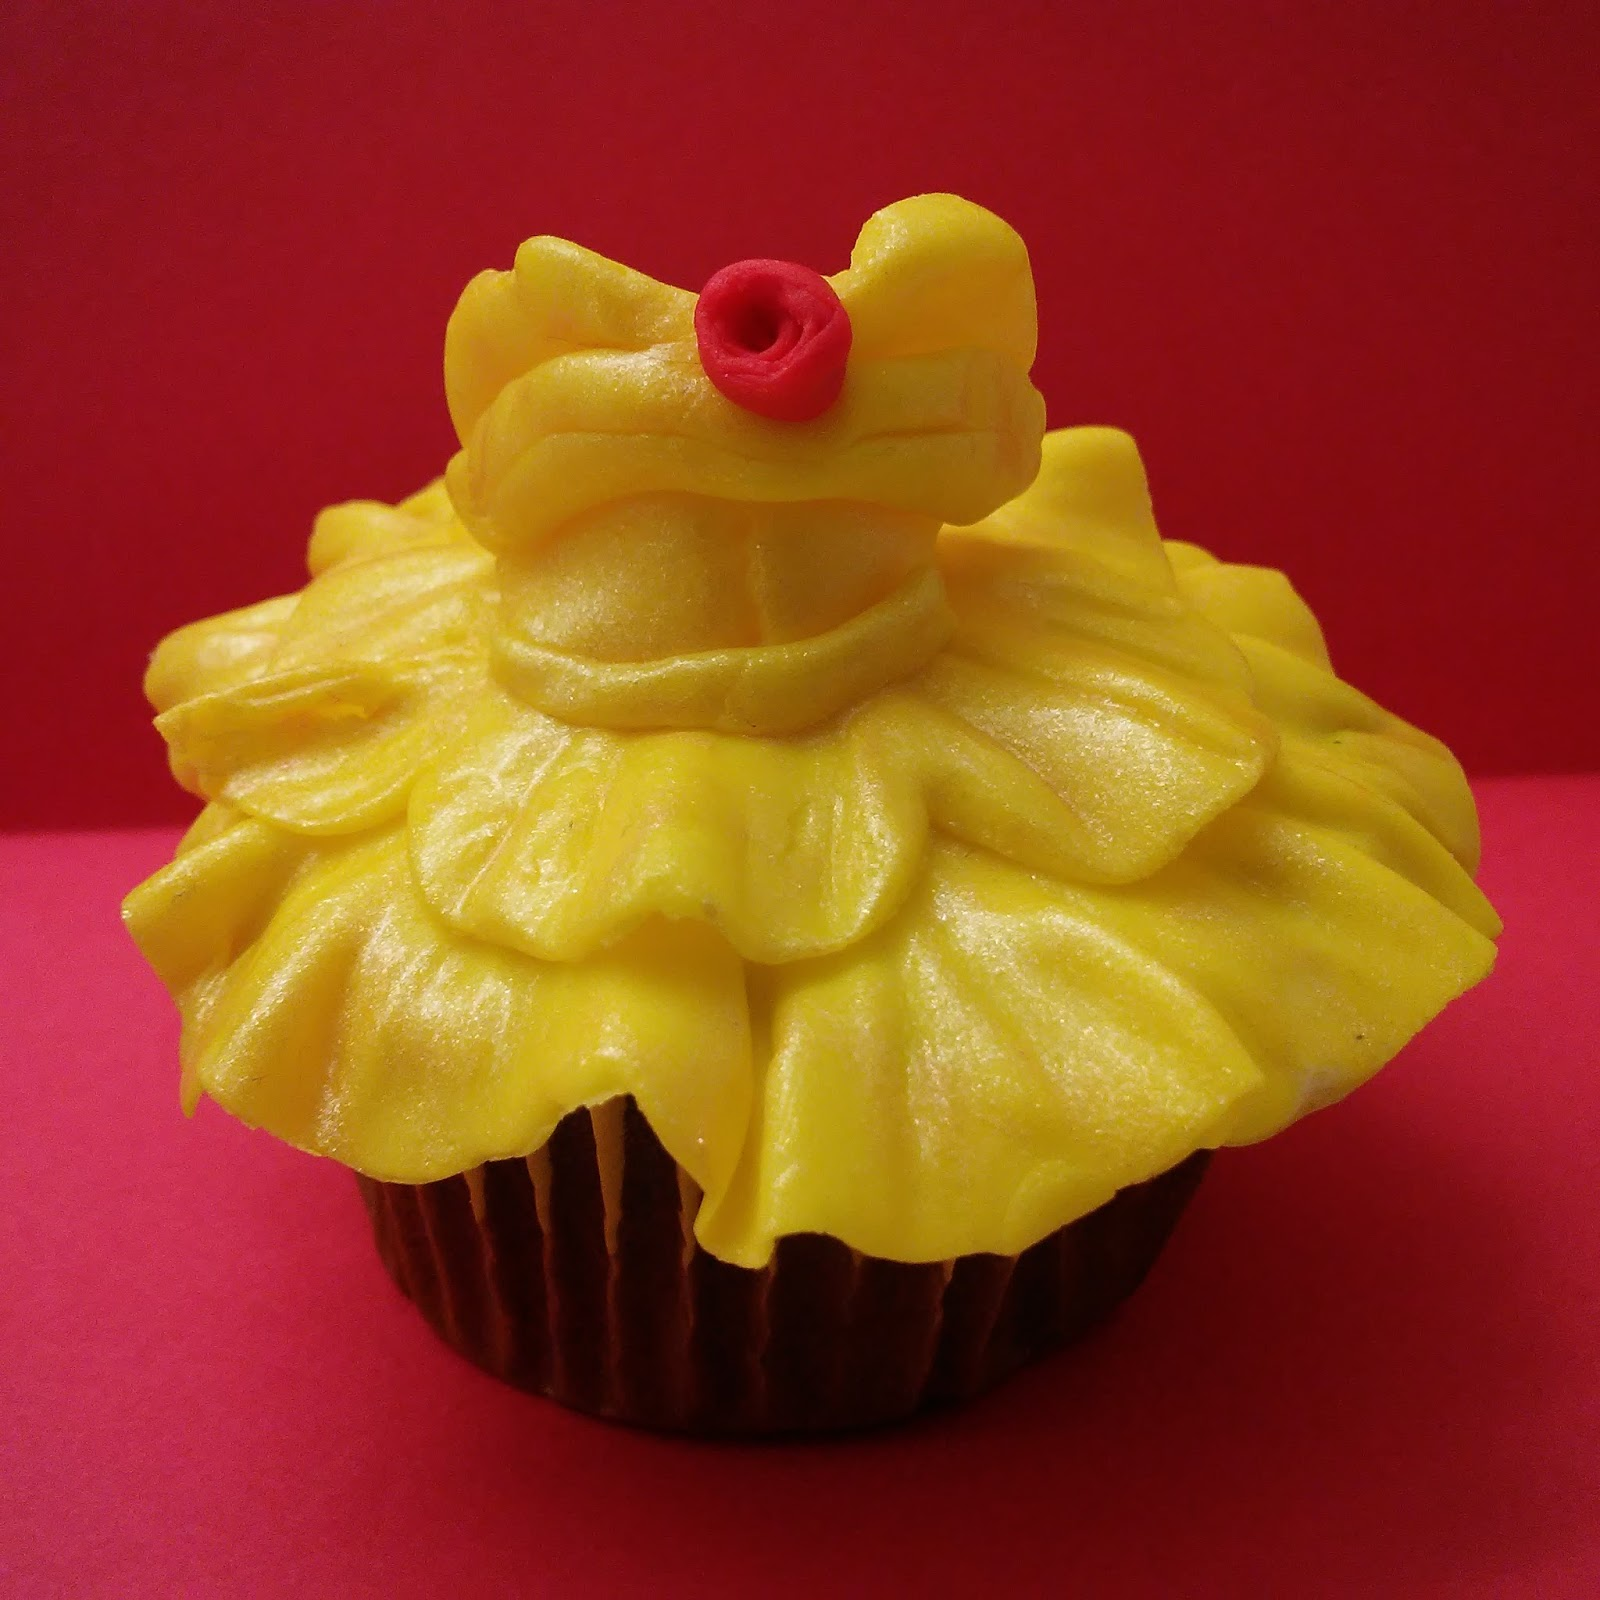 These Belle Inspired Dress Cupcakes Are Super Easy To Make I Had A Fun And Long Day Making Lovely Little Celebrate The New Live